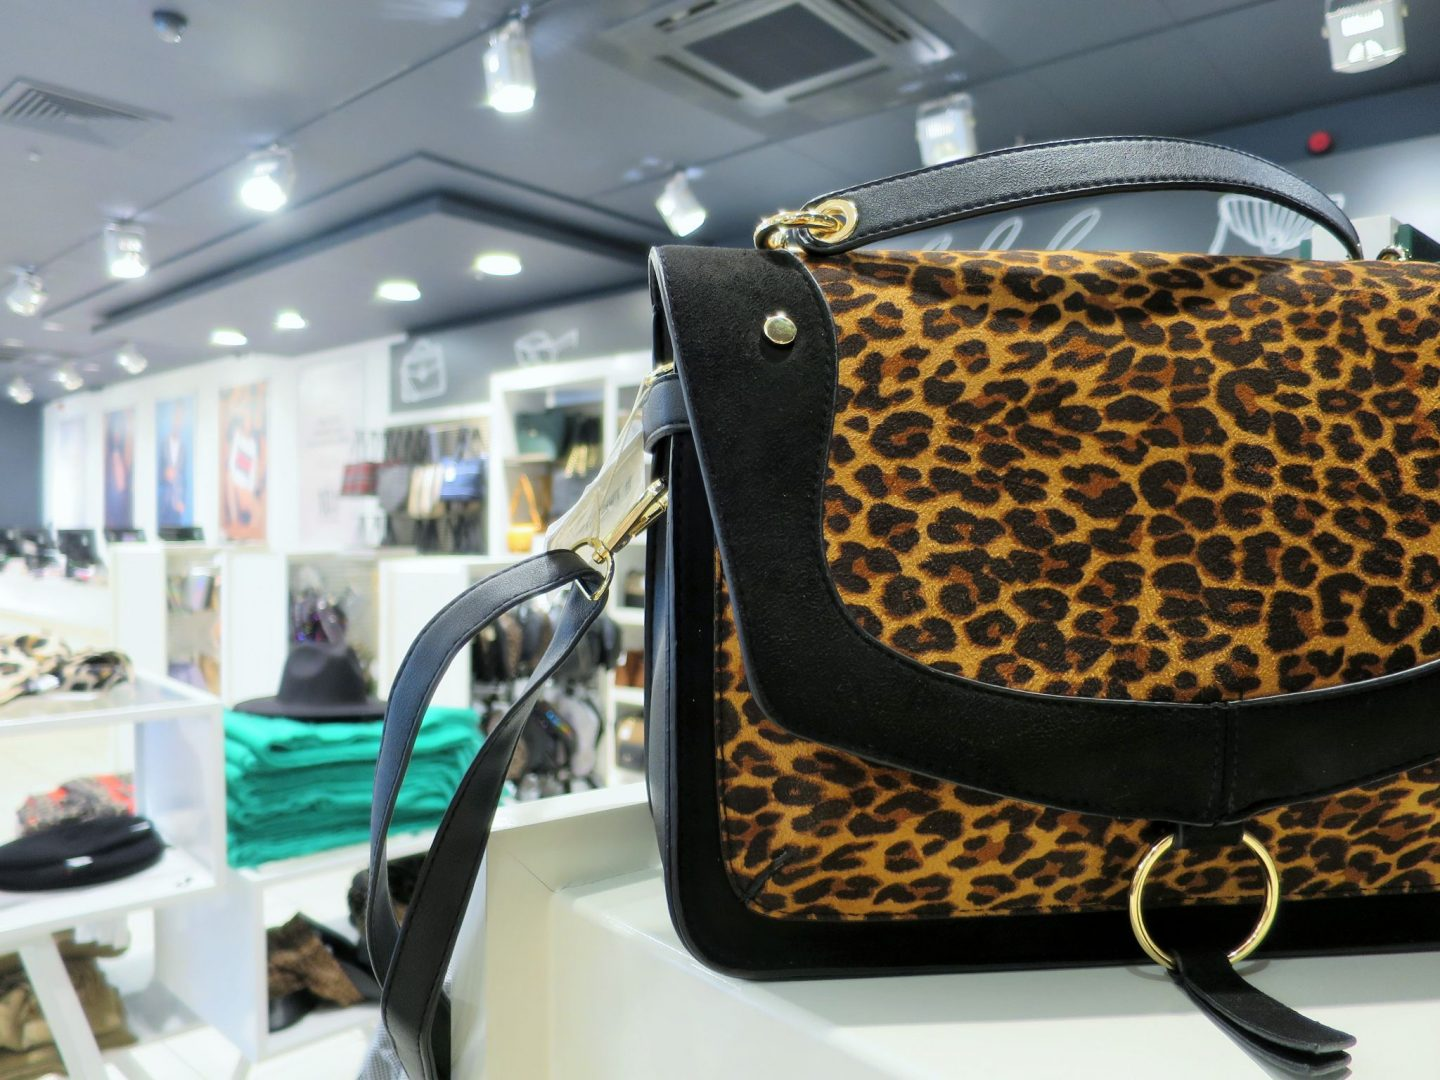 Leopard Print Bag from New Look